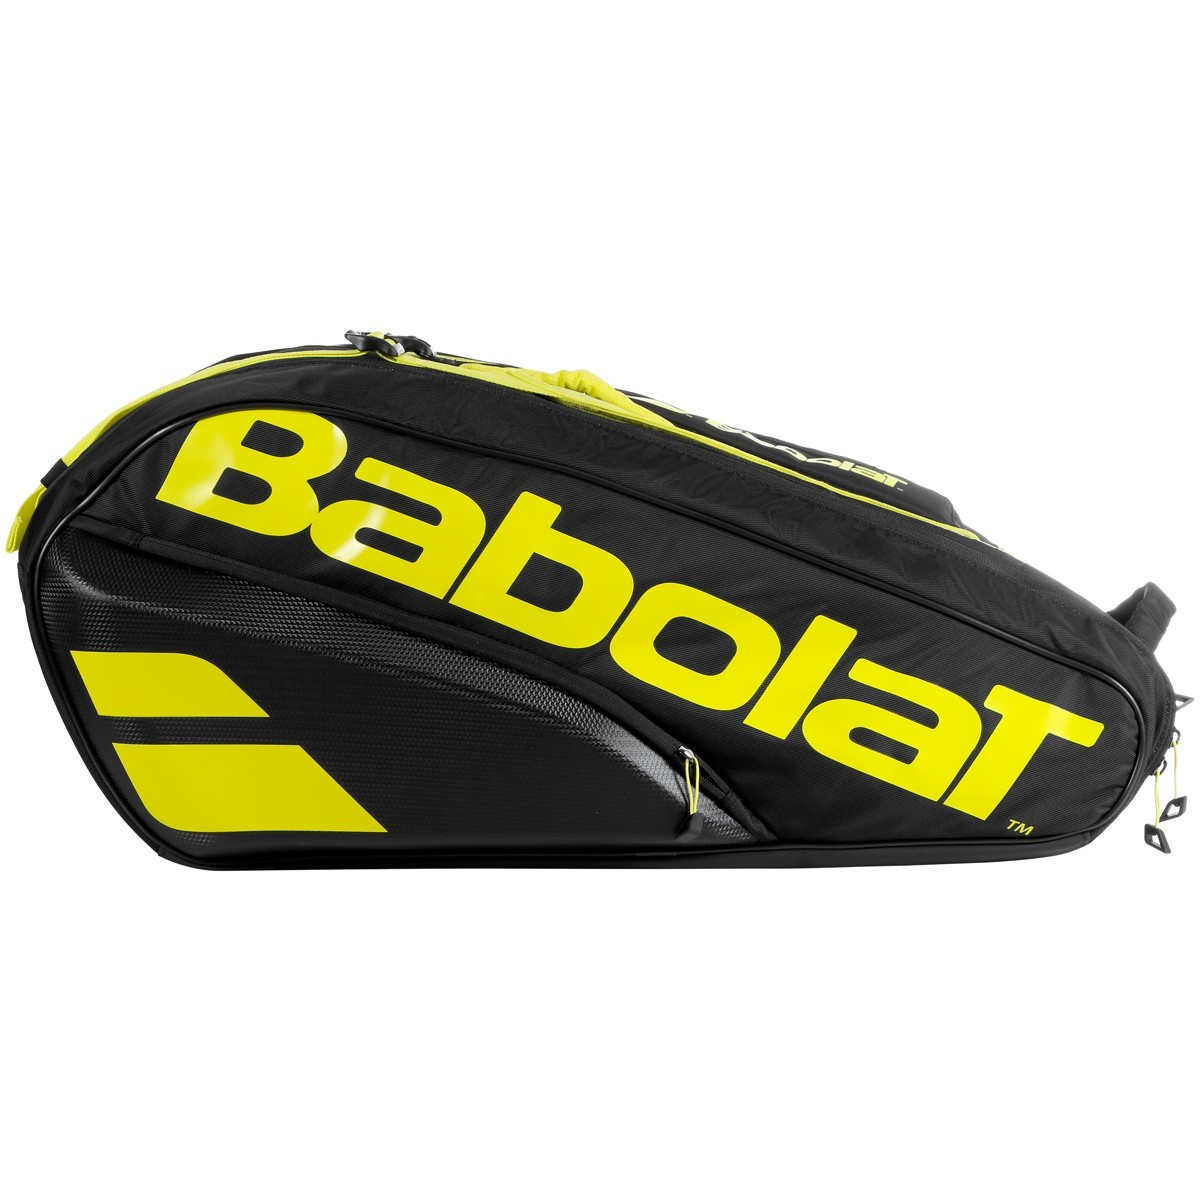 Теннисная сумка Babolat Pure Aero x12 2021 black/yelllow